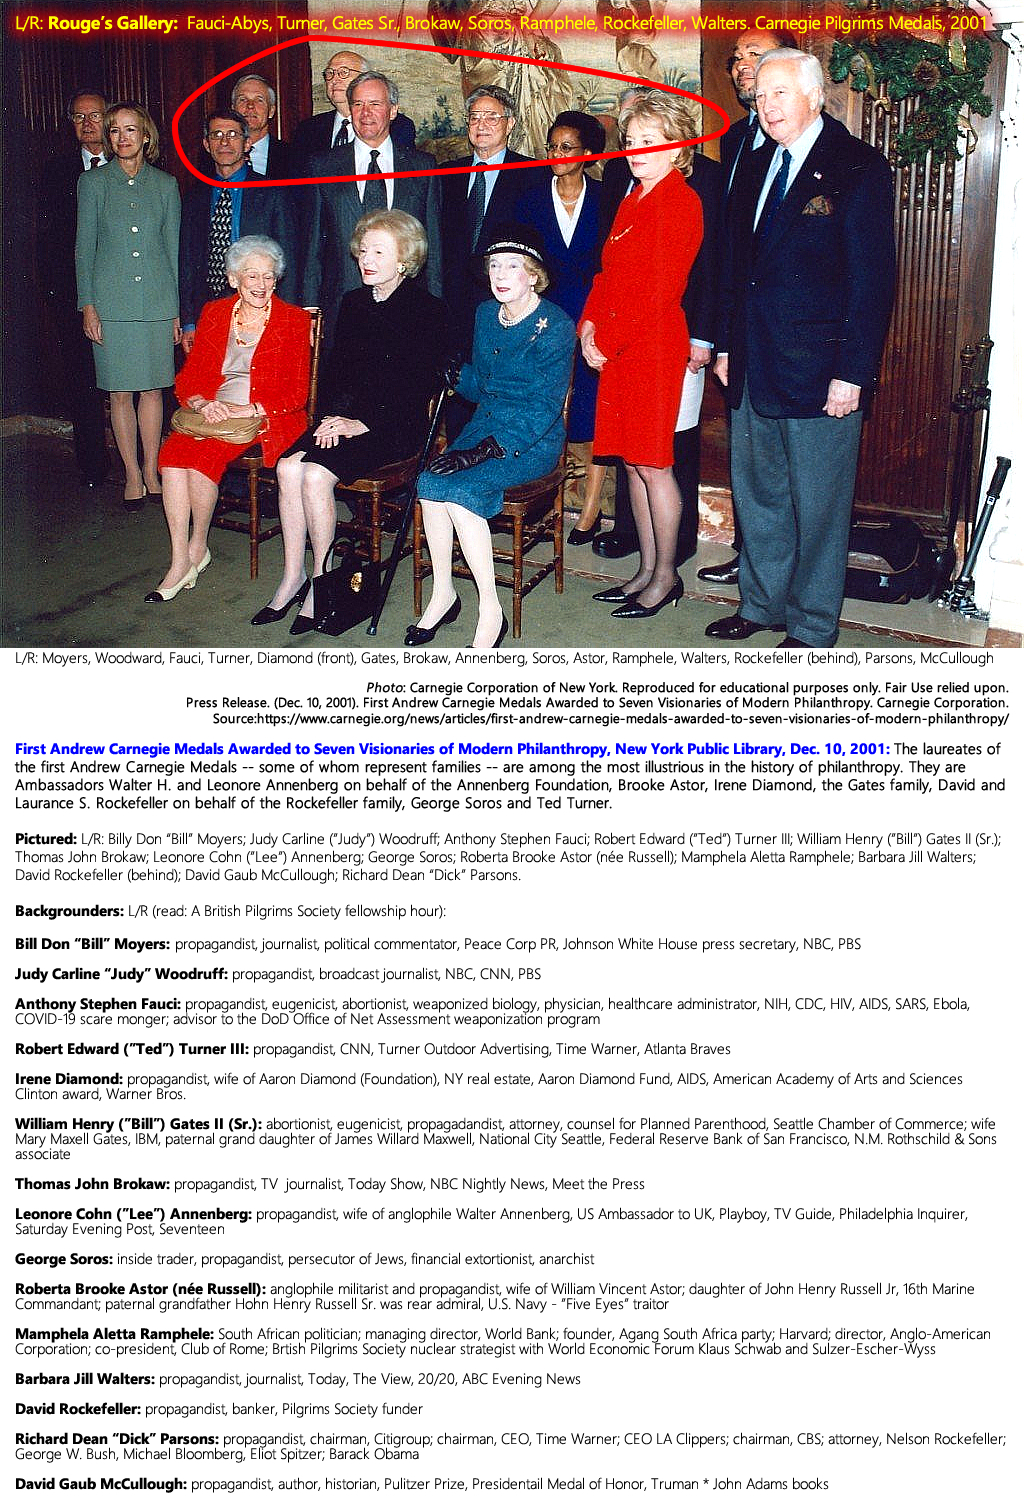 Press Release. (Dec. 10, 2001). First Andrew Carnegie [Pilgrims Society] Medals Awarded to Seven Visionaries of Modern Philanthropy. Carnegie Corporation.